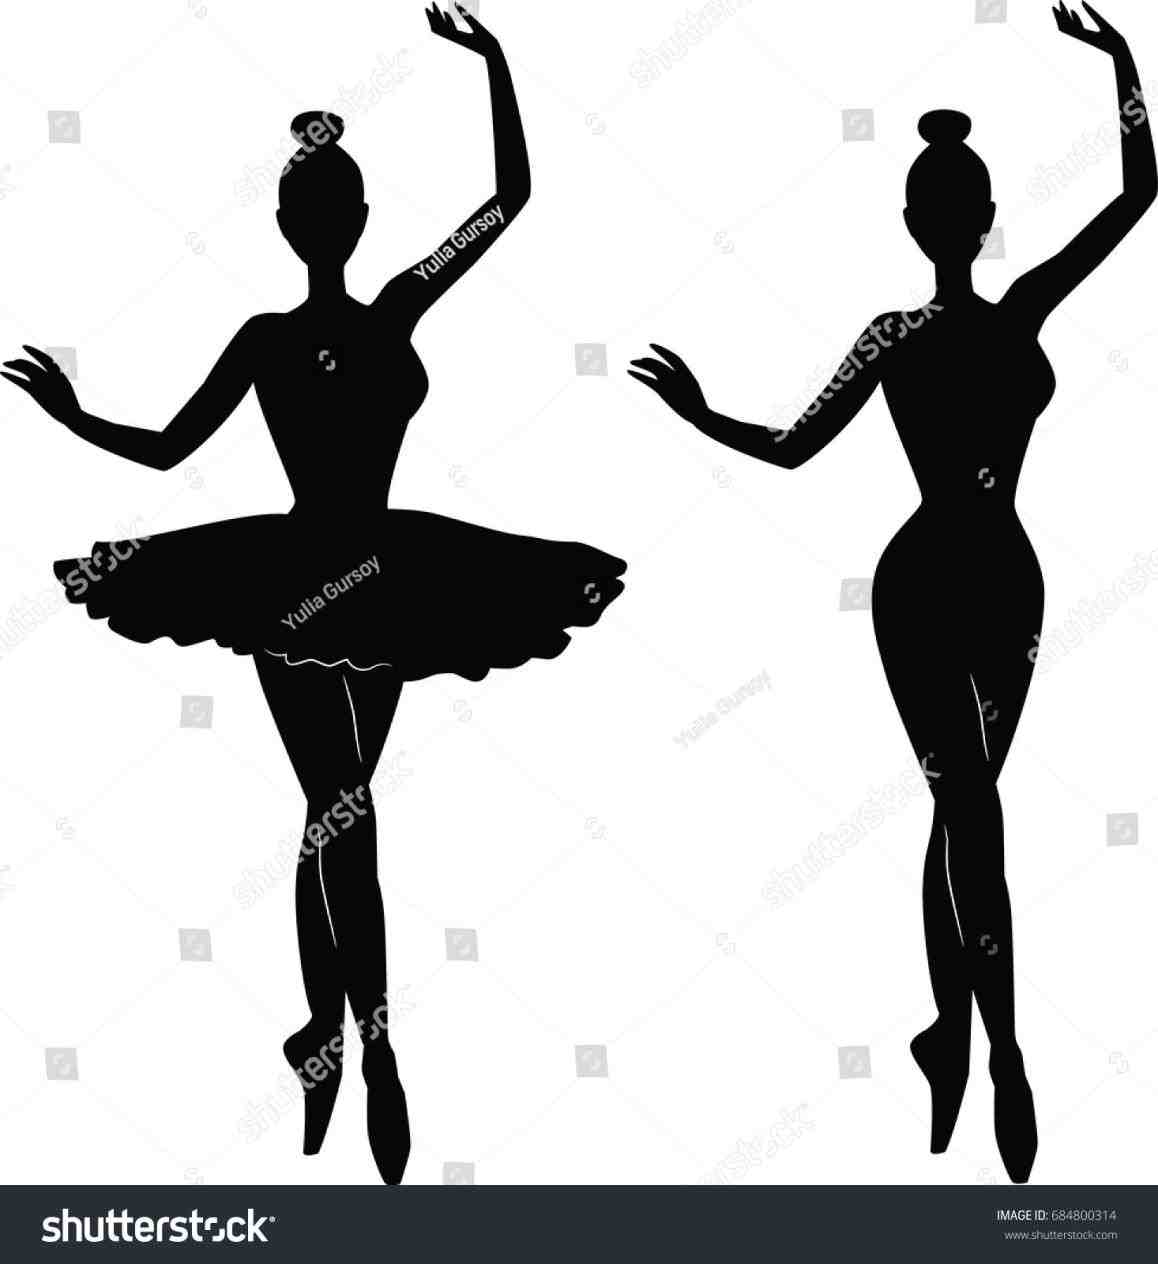 Belly Dancer Silhouette Clip Art At Getdrawings